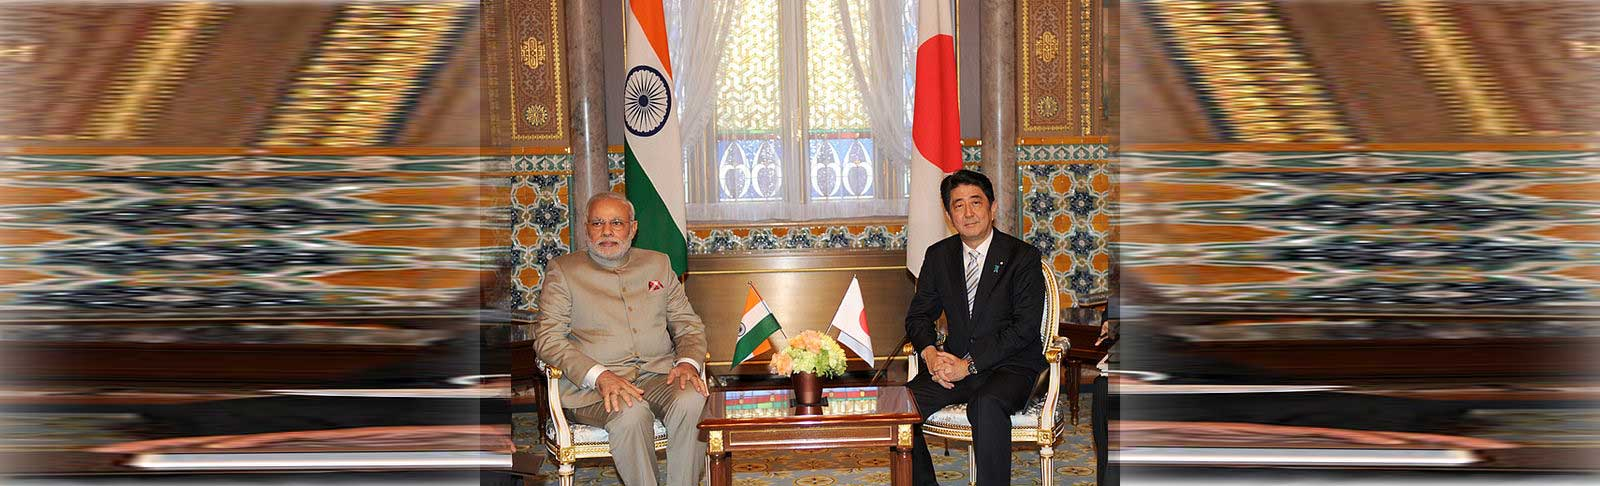 Japan and India's Act East Policy: Prospects and Challenges for Maritime Cooperation